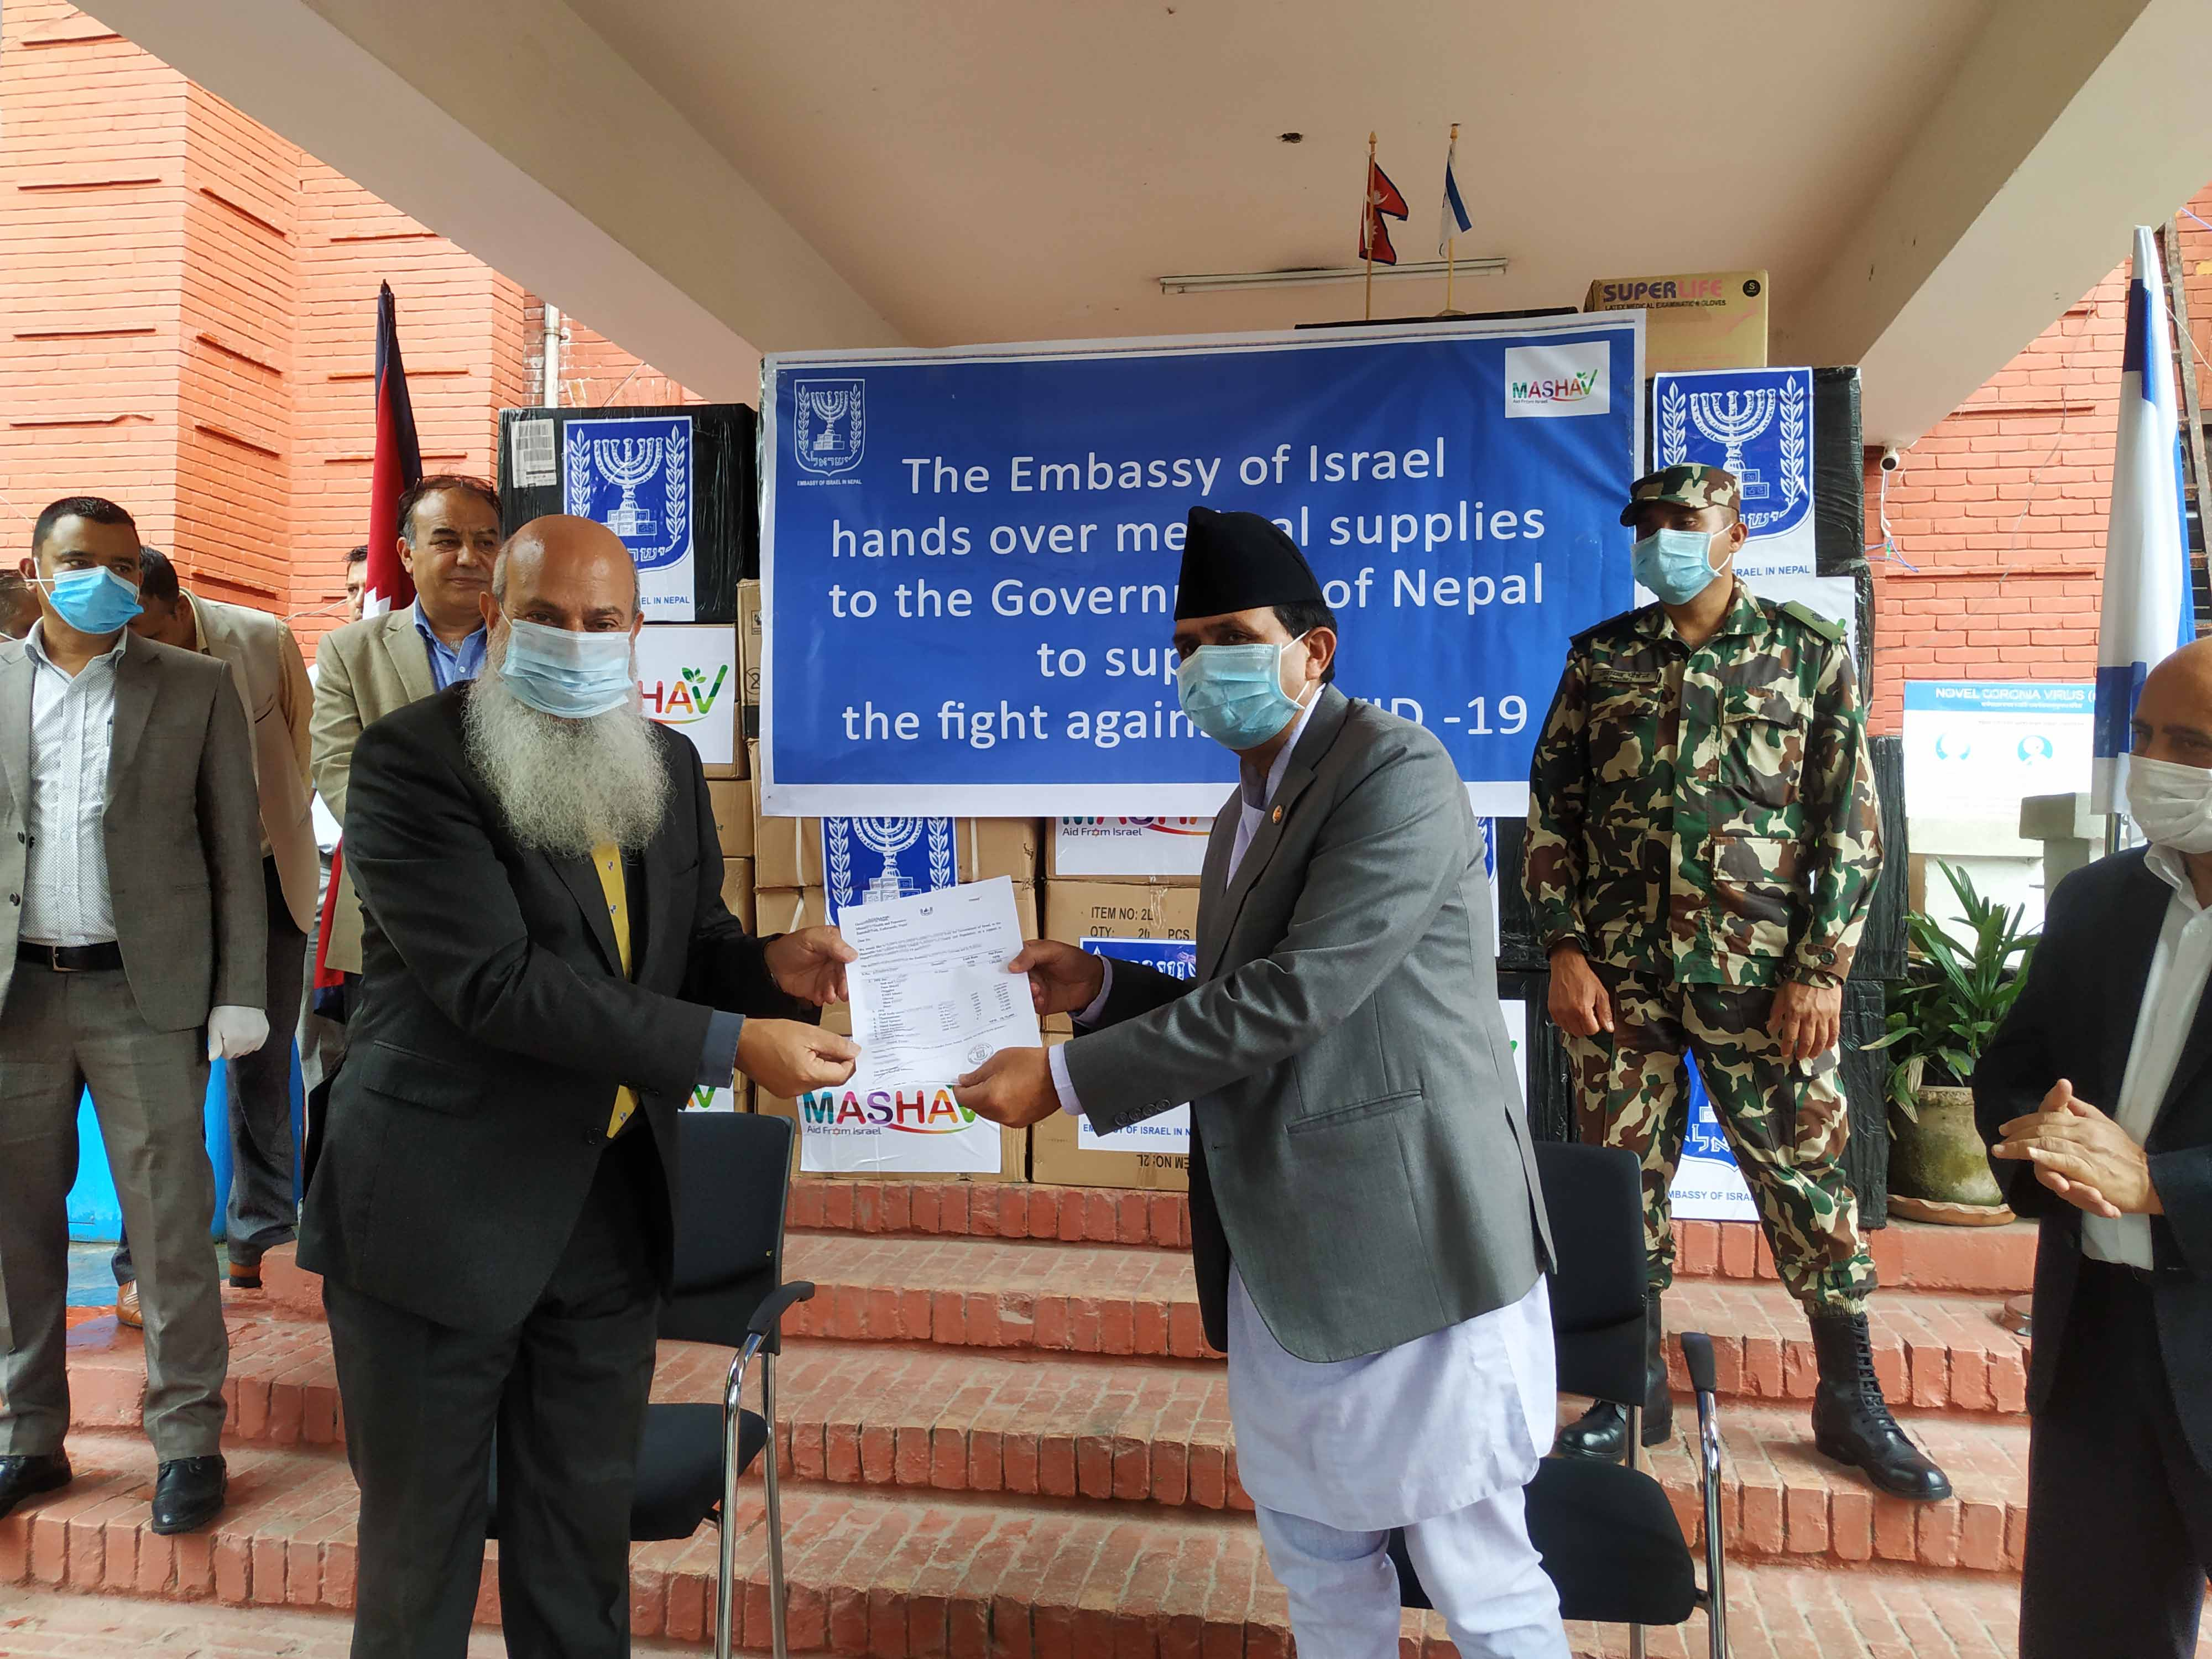 Ambassador of Israel to Nepal Benny Omer handed over medical supplies to Minister of Health and Population Bhanubhakta Dhakal, in Kathmandu, on June 16, 2020. Photo: Embassy of Israel in Nepal